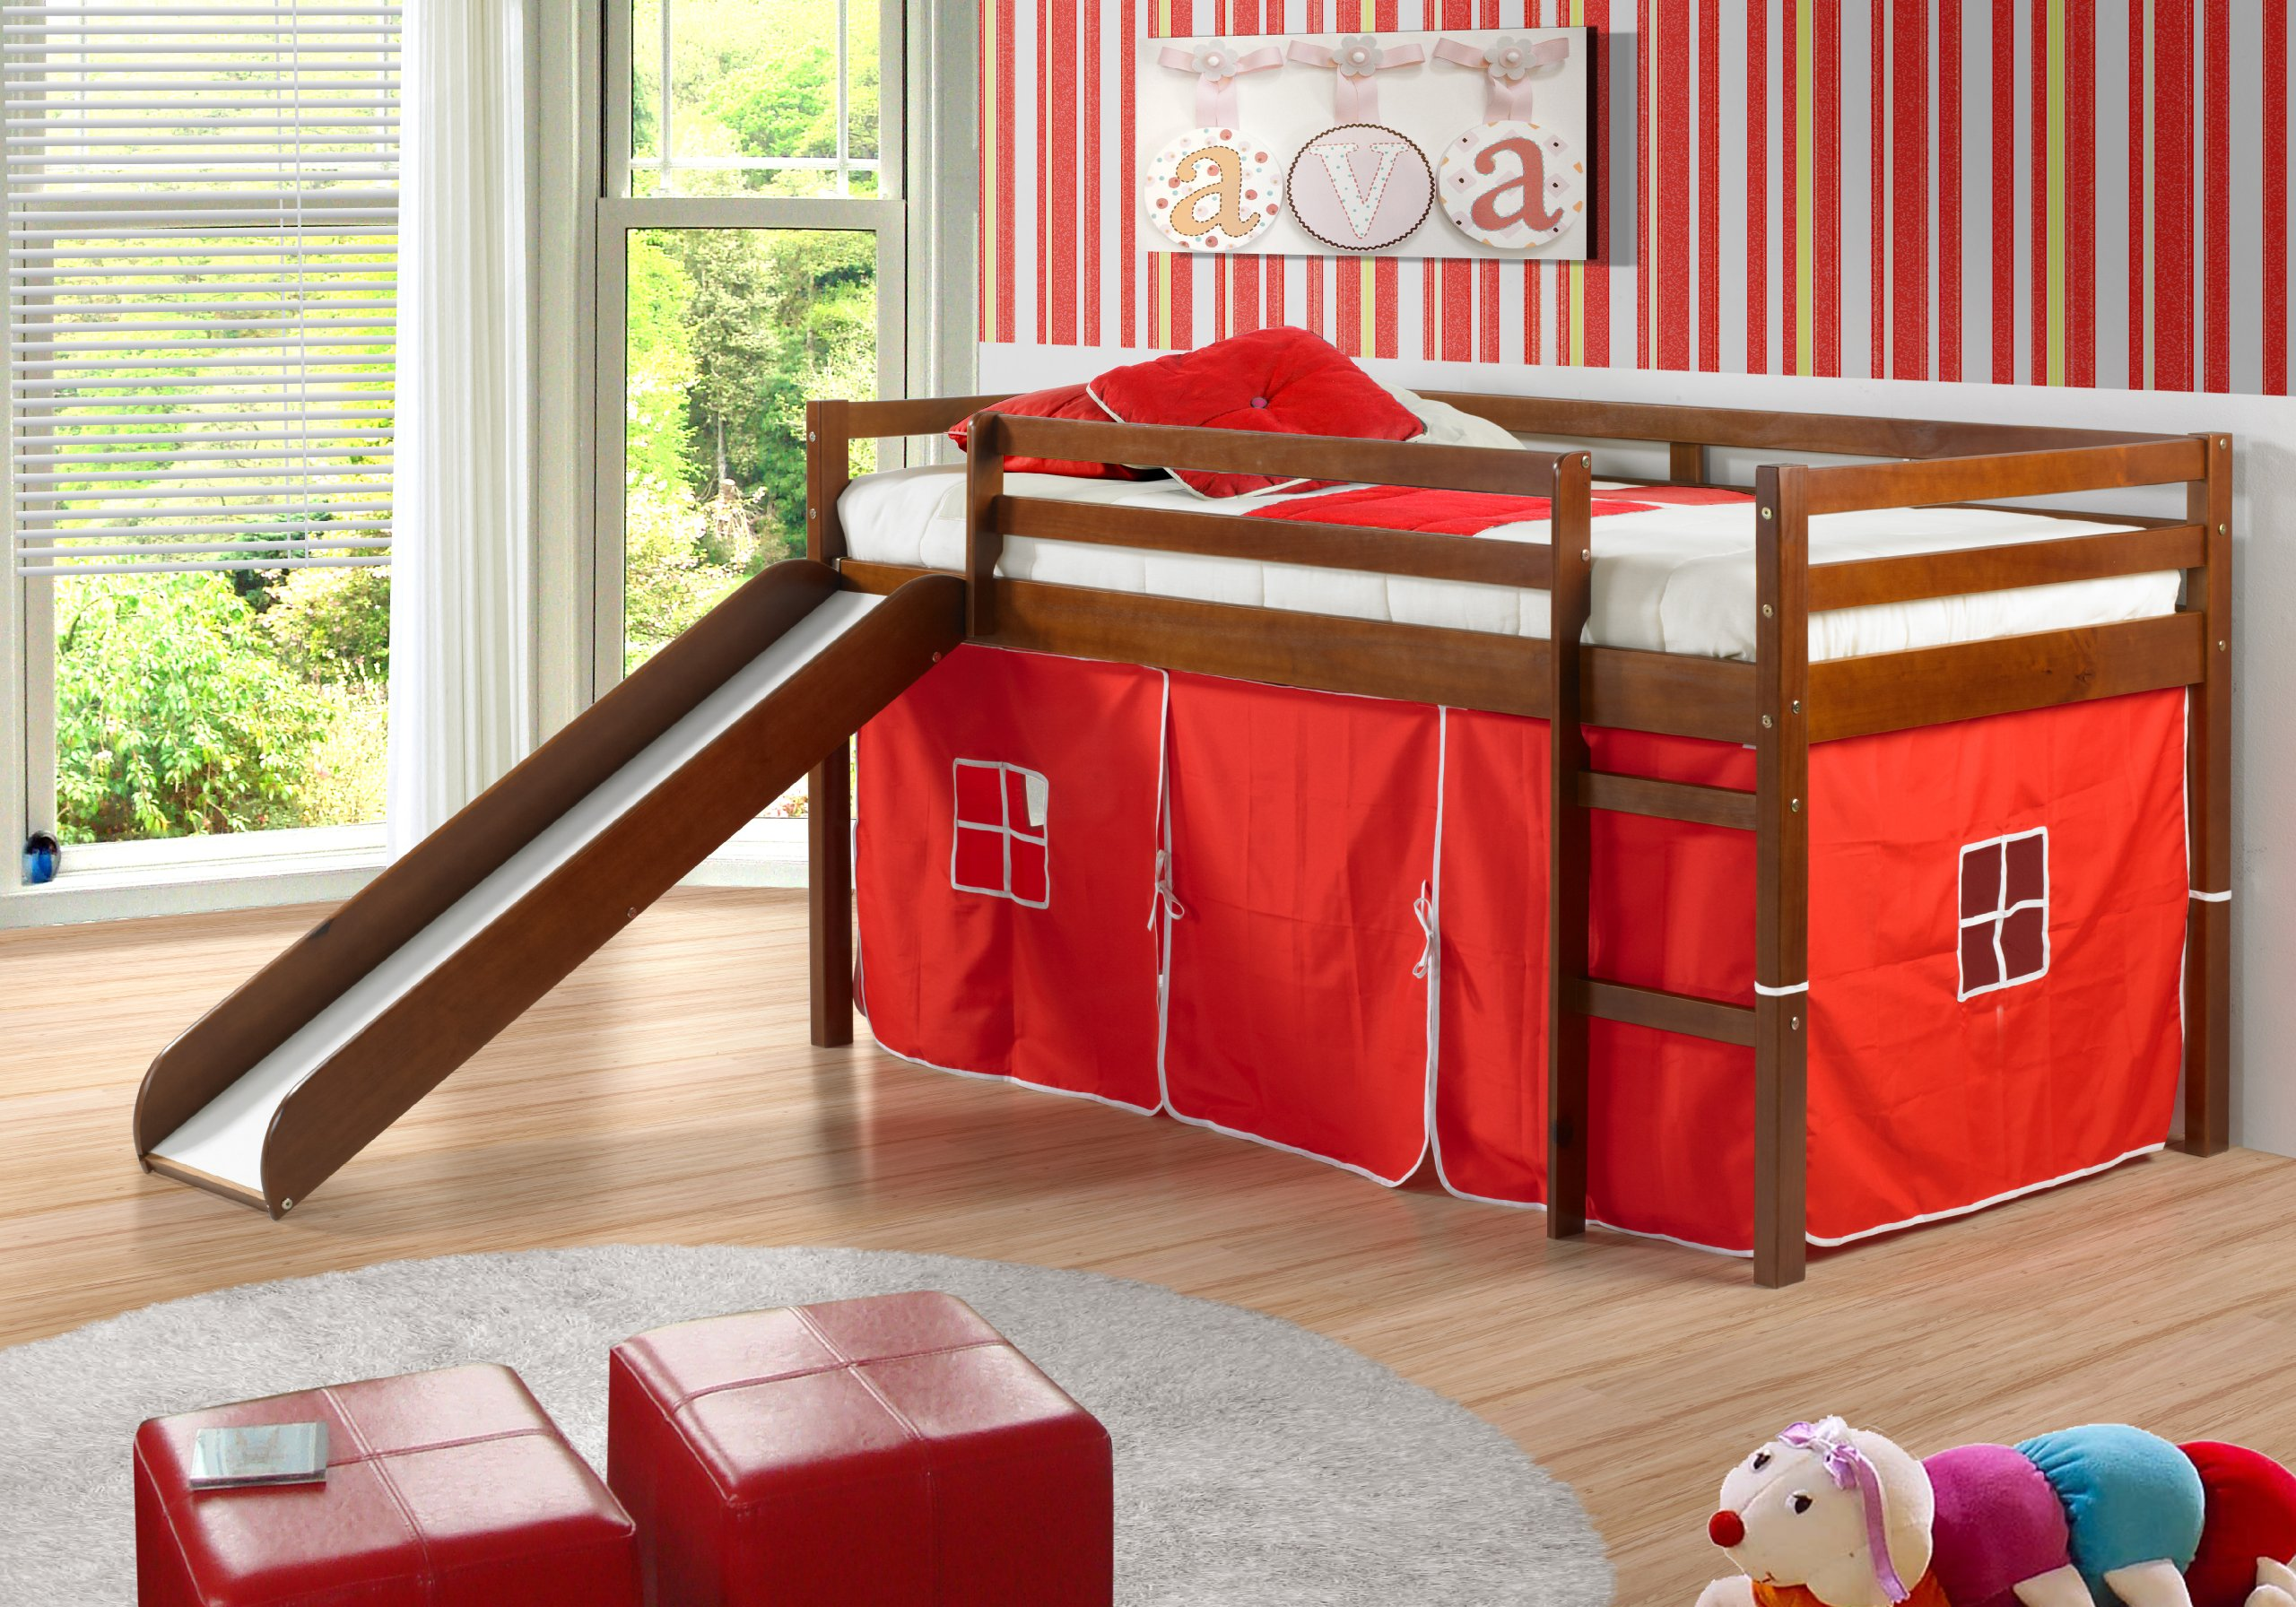 Red Cushions and Wooden Slide Completing Appealing Boys Bunk Beds inside Spacious Bedroom with Red Ottomans